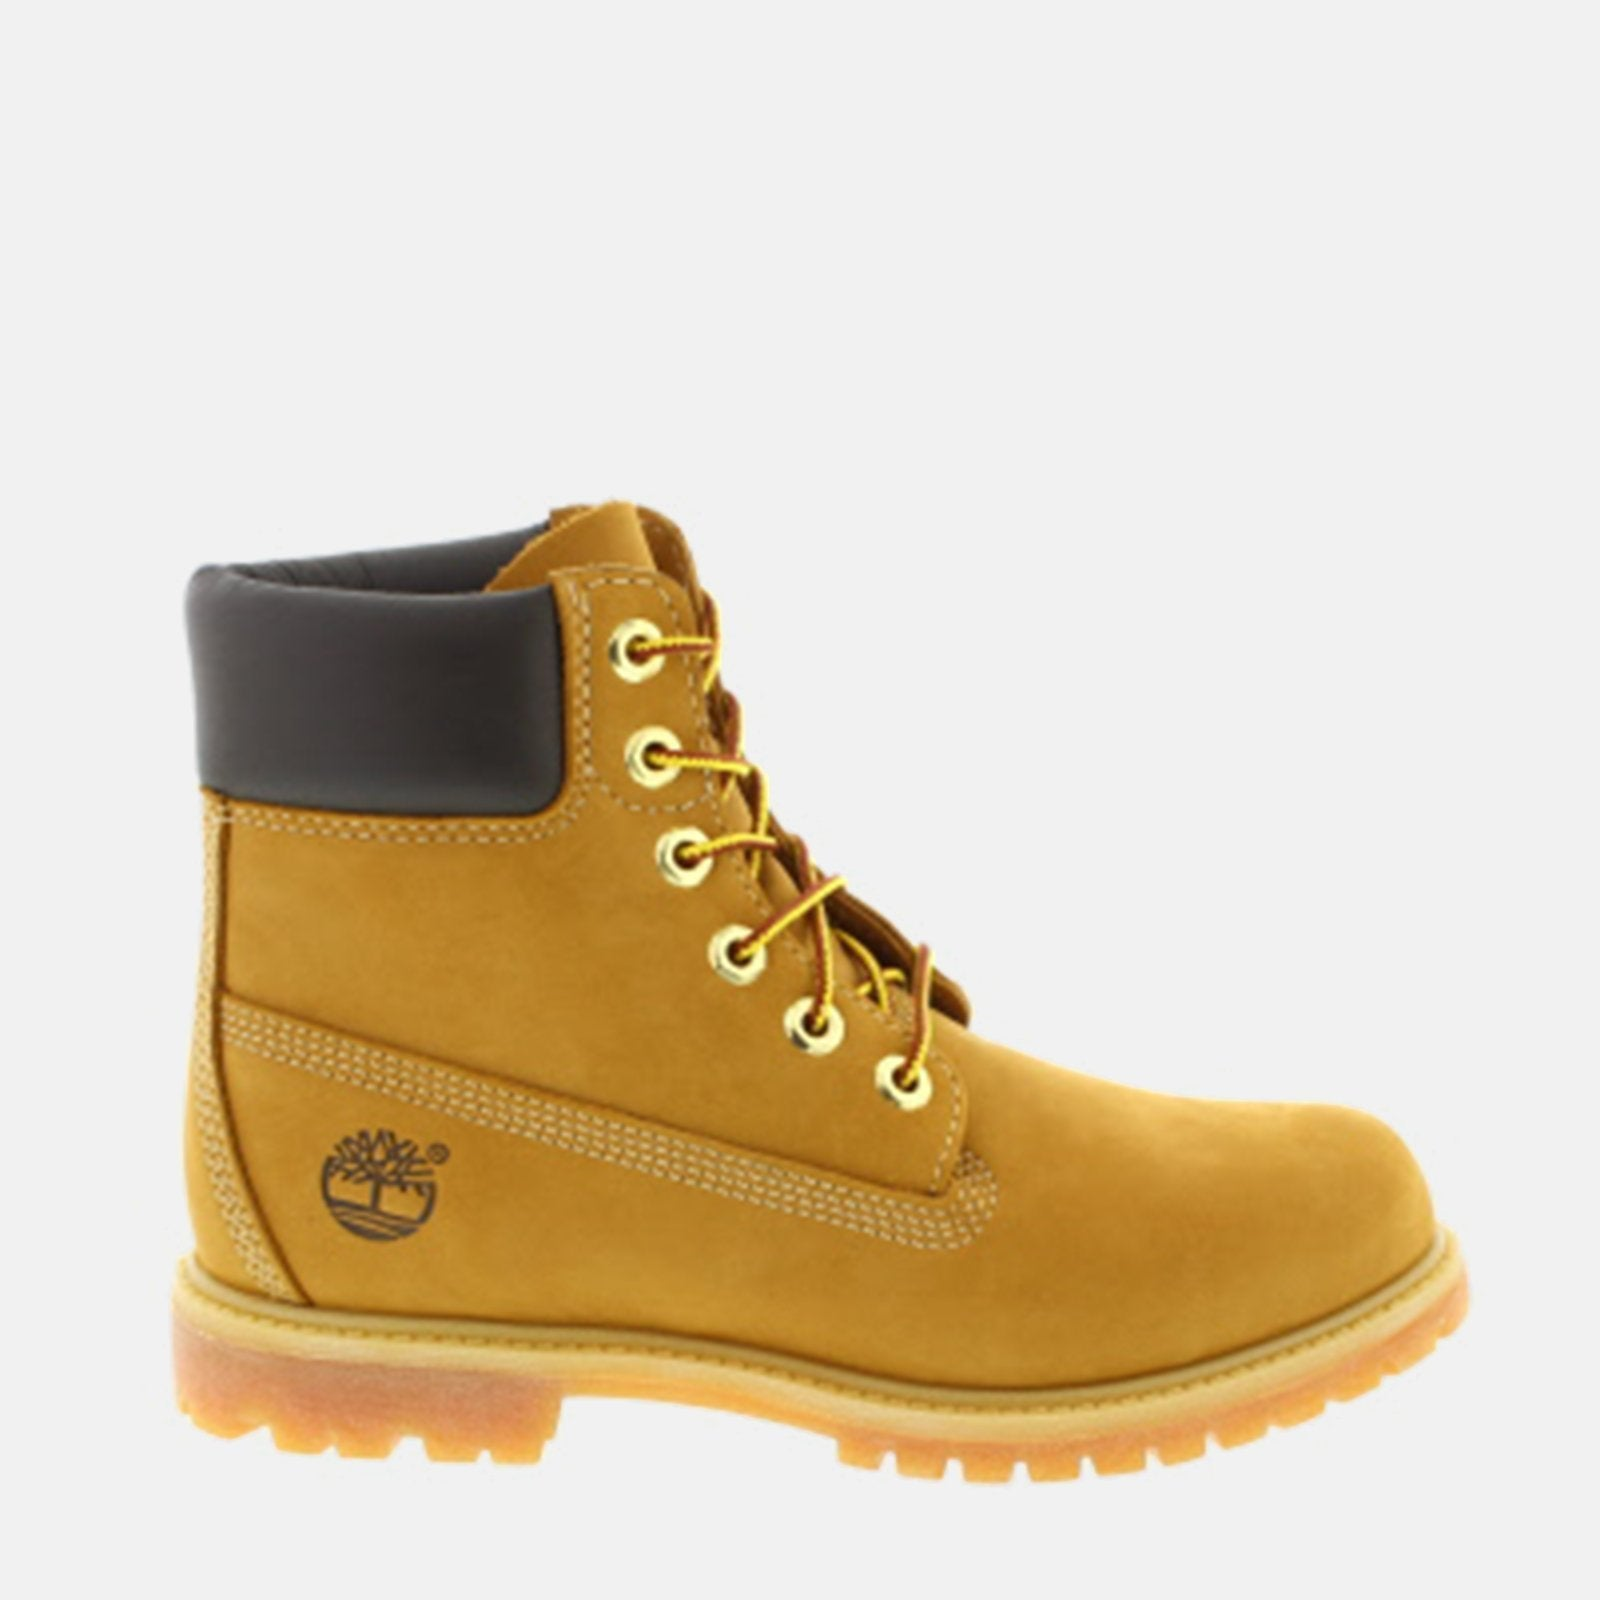 422fe96036a Timberland Footwear UK 3   EU 35.5   US 5   Beige 6in Premium Boot Women s.  Timberland Footwear UK 3   EU 35.5   US 5   Beige 6in Premium Boot Women s